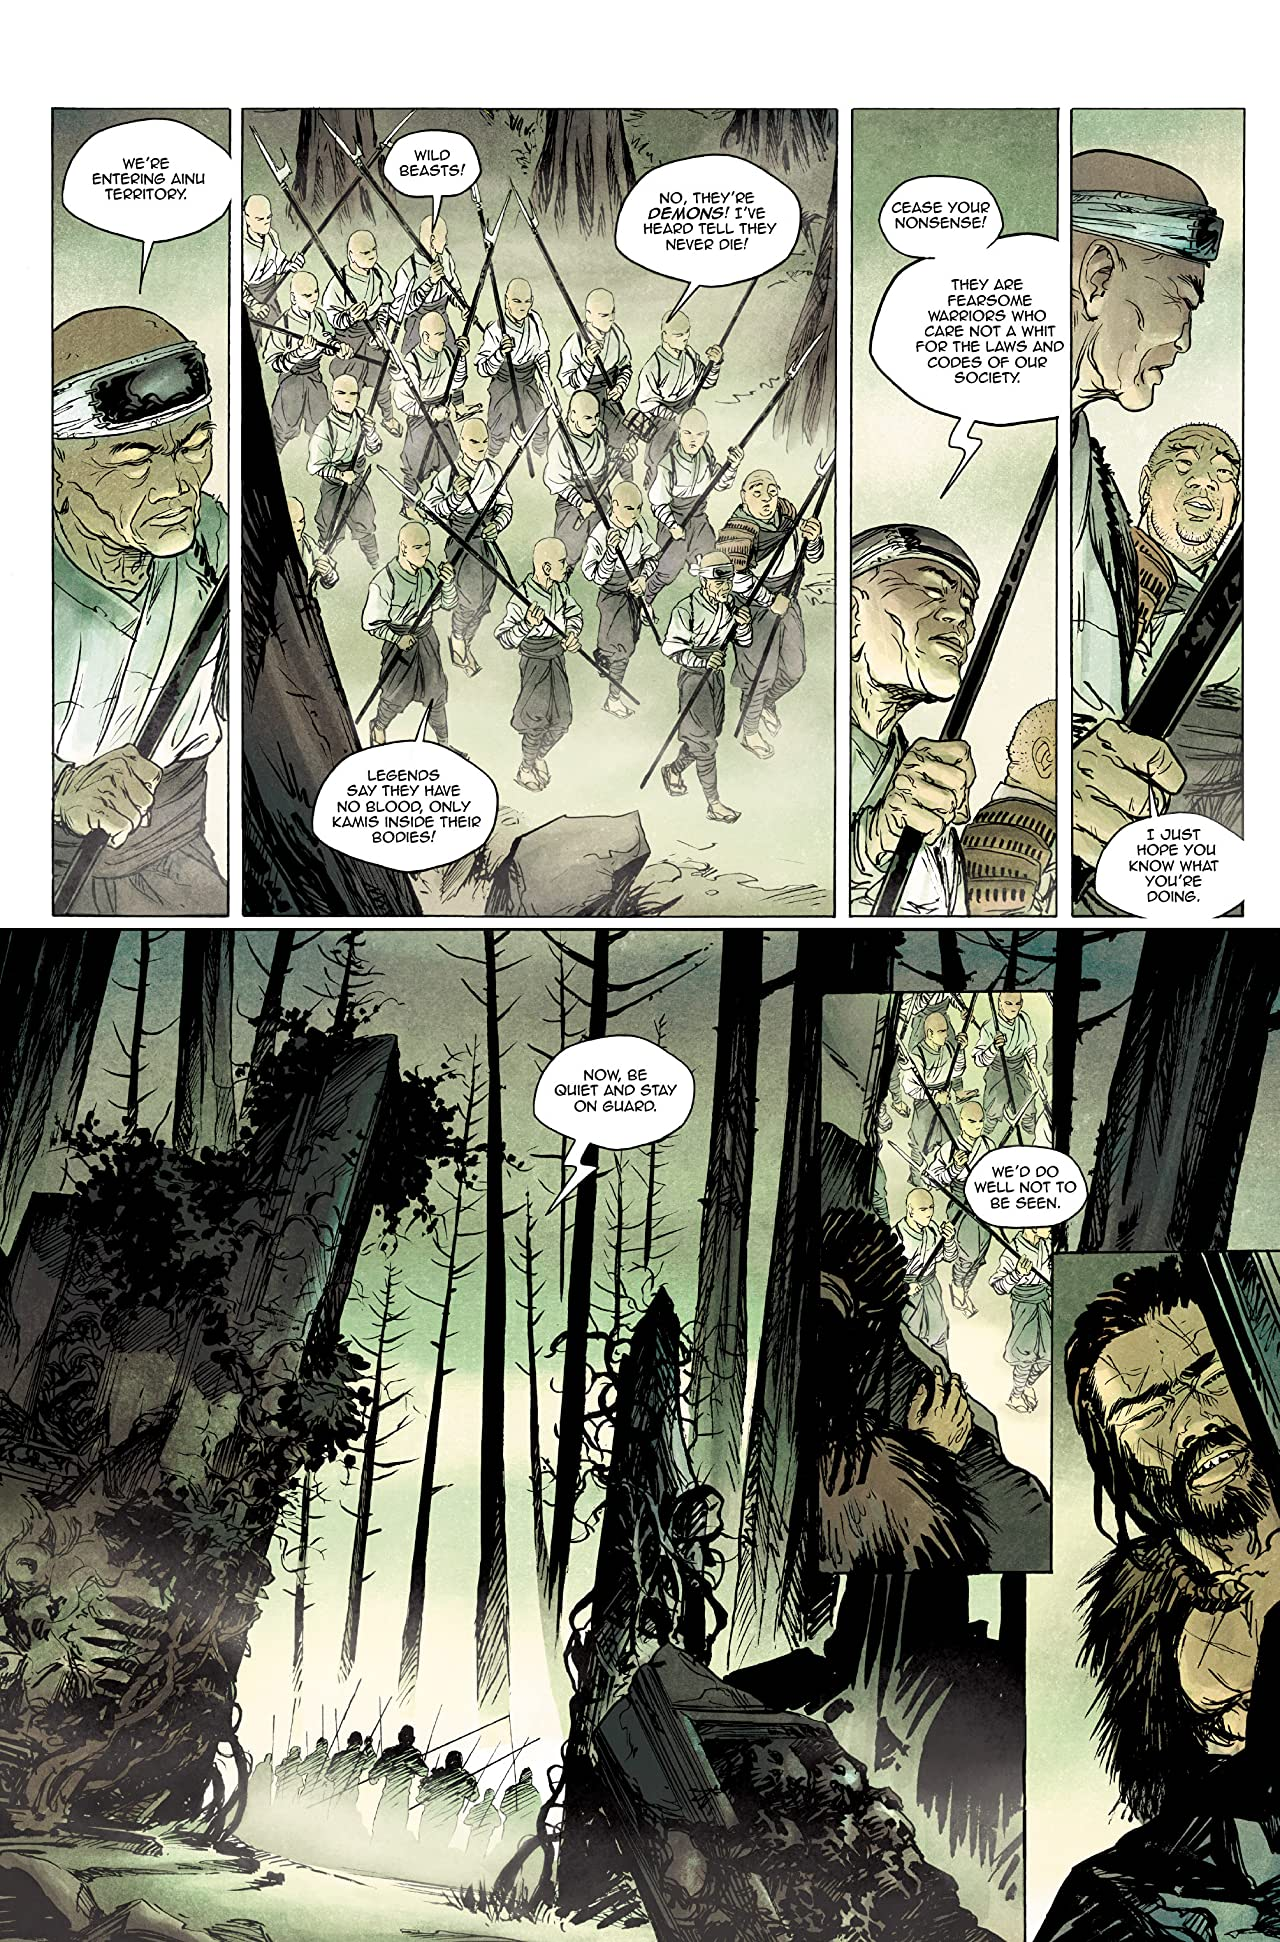 Samurai: Brothers In Arms #6